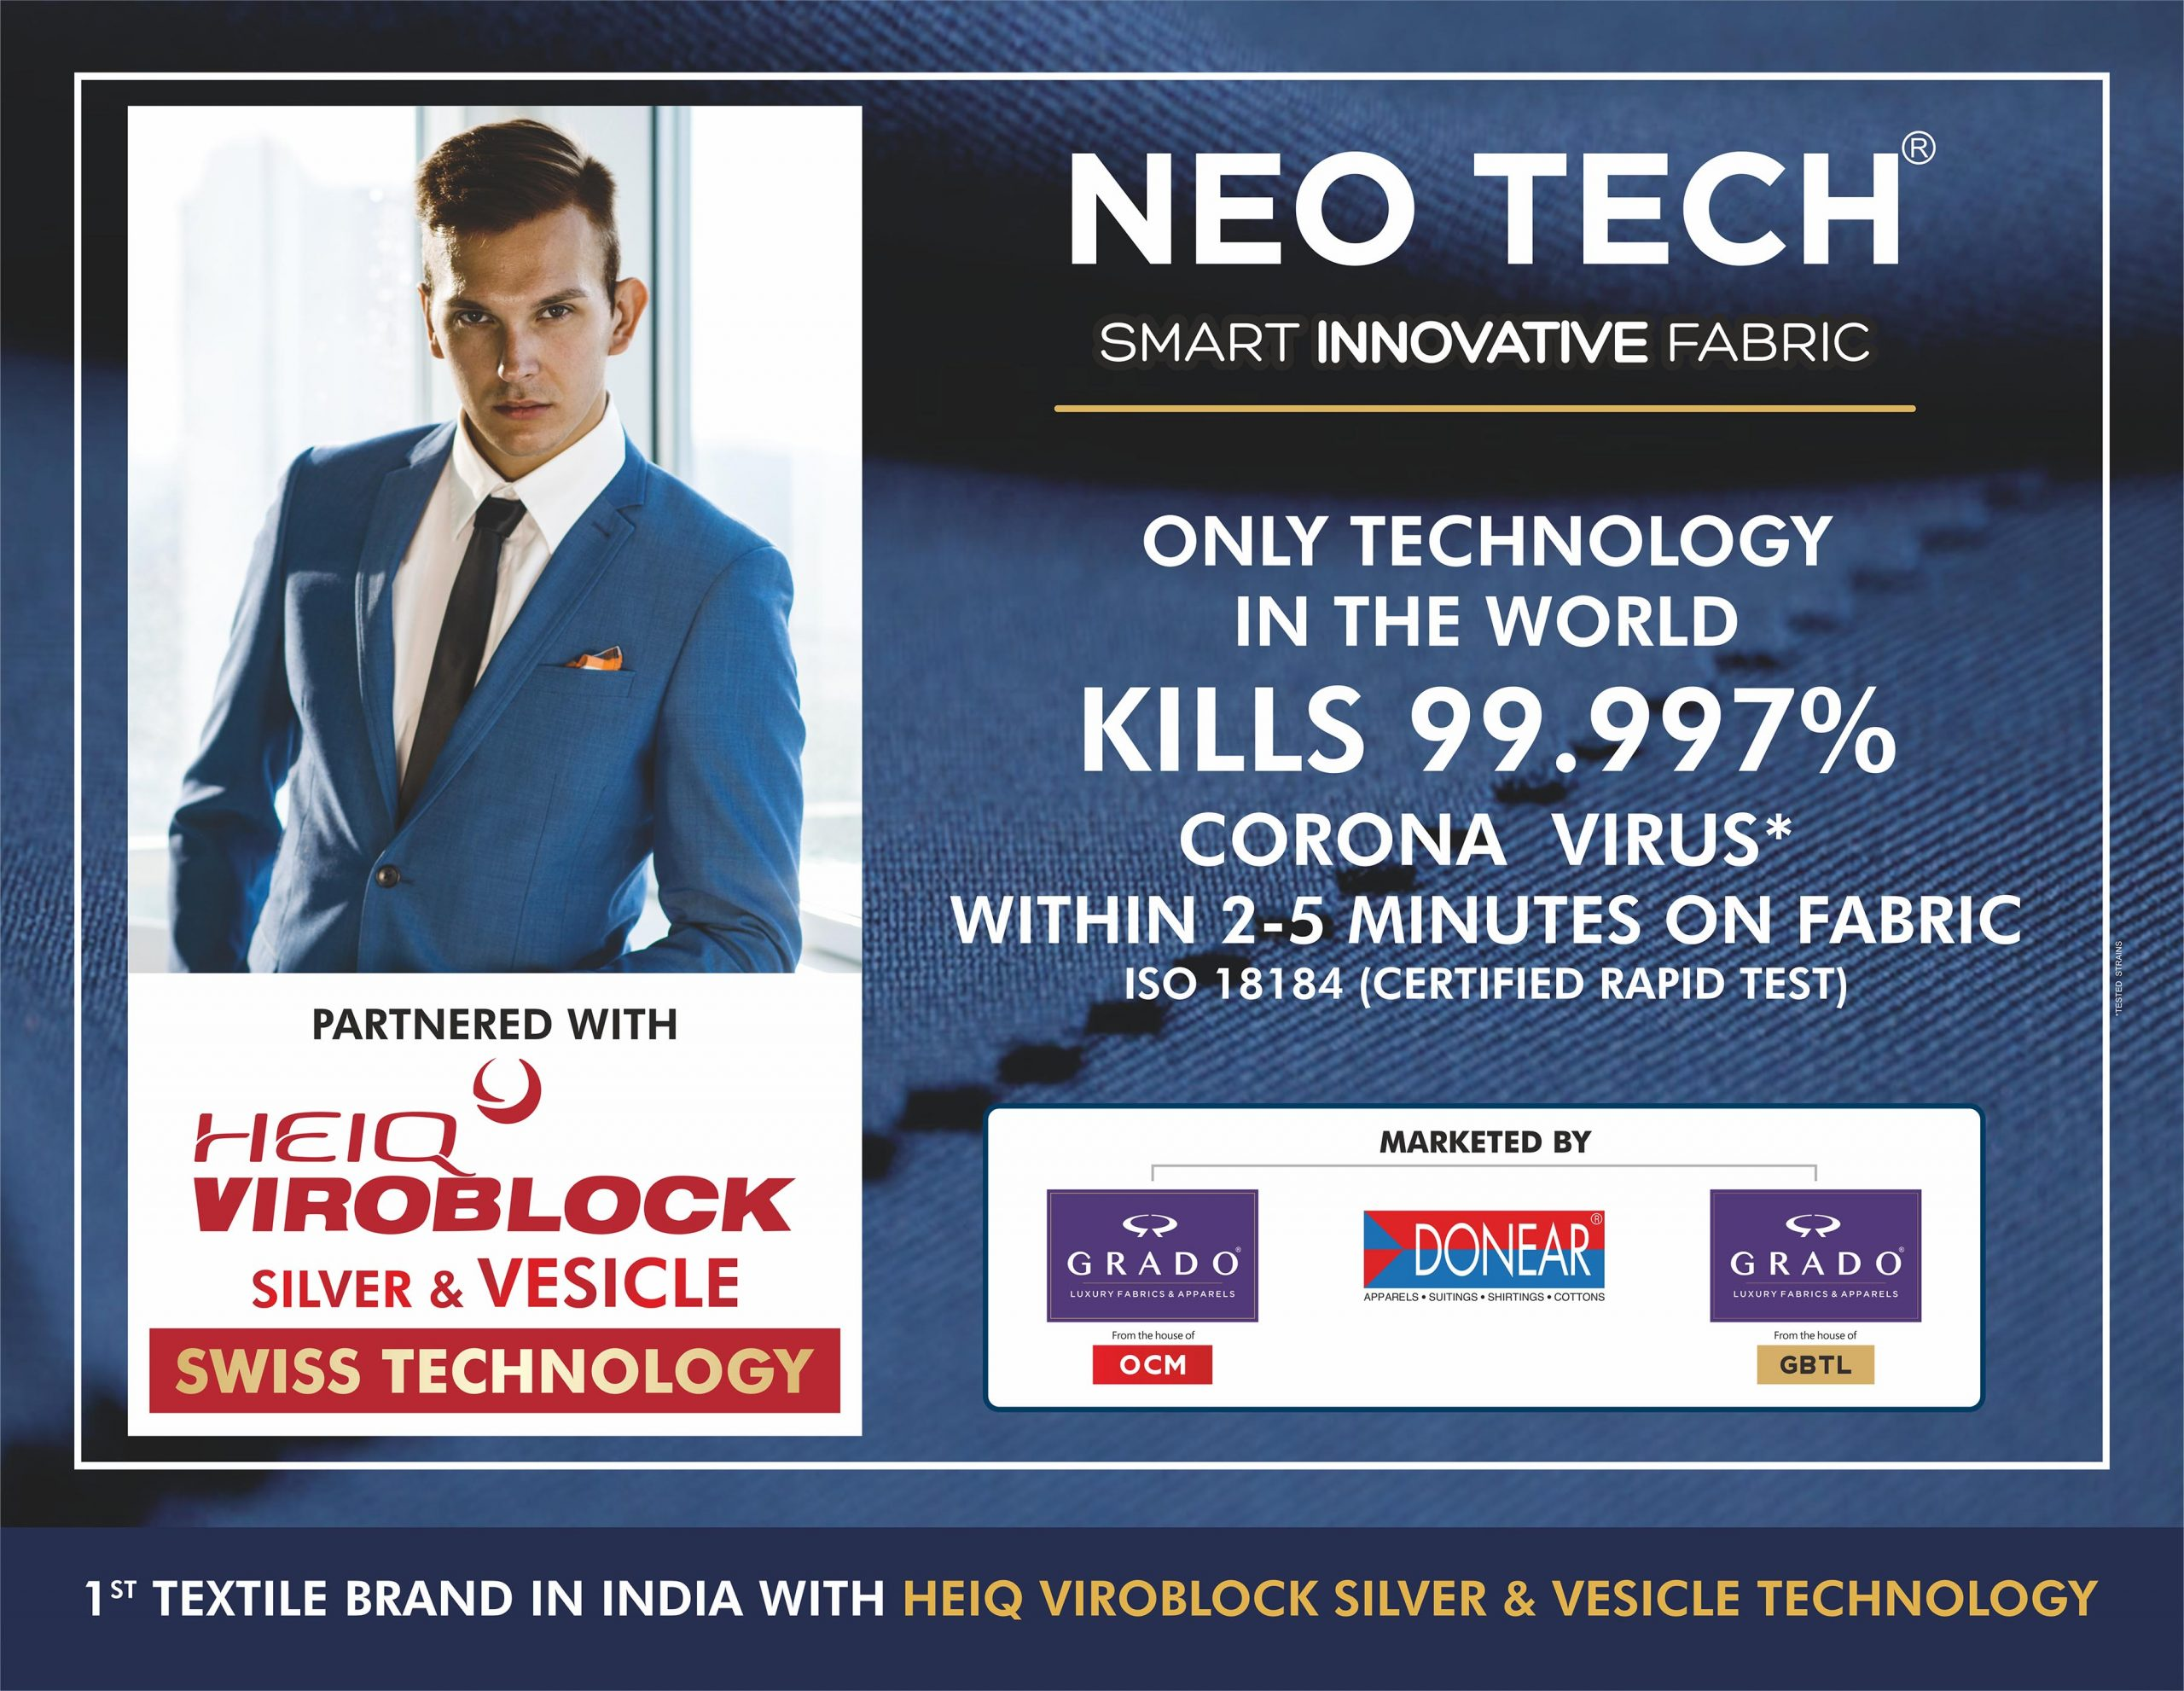 TEXTILE INNOVATION EXPERT, DONEAR GROUP COLLABORATES WITH INDIA'S LEADING CLOTHING BRAND ZODIAC